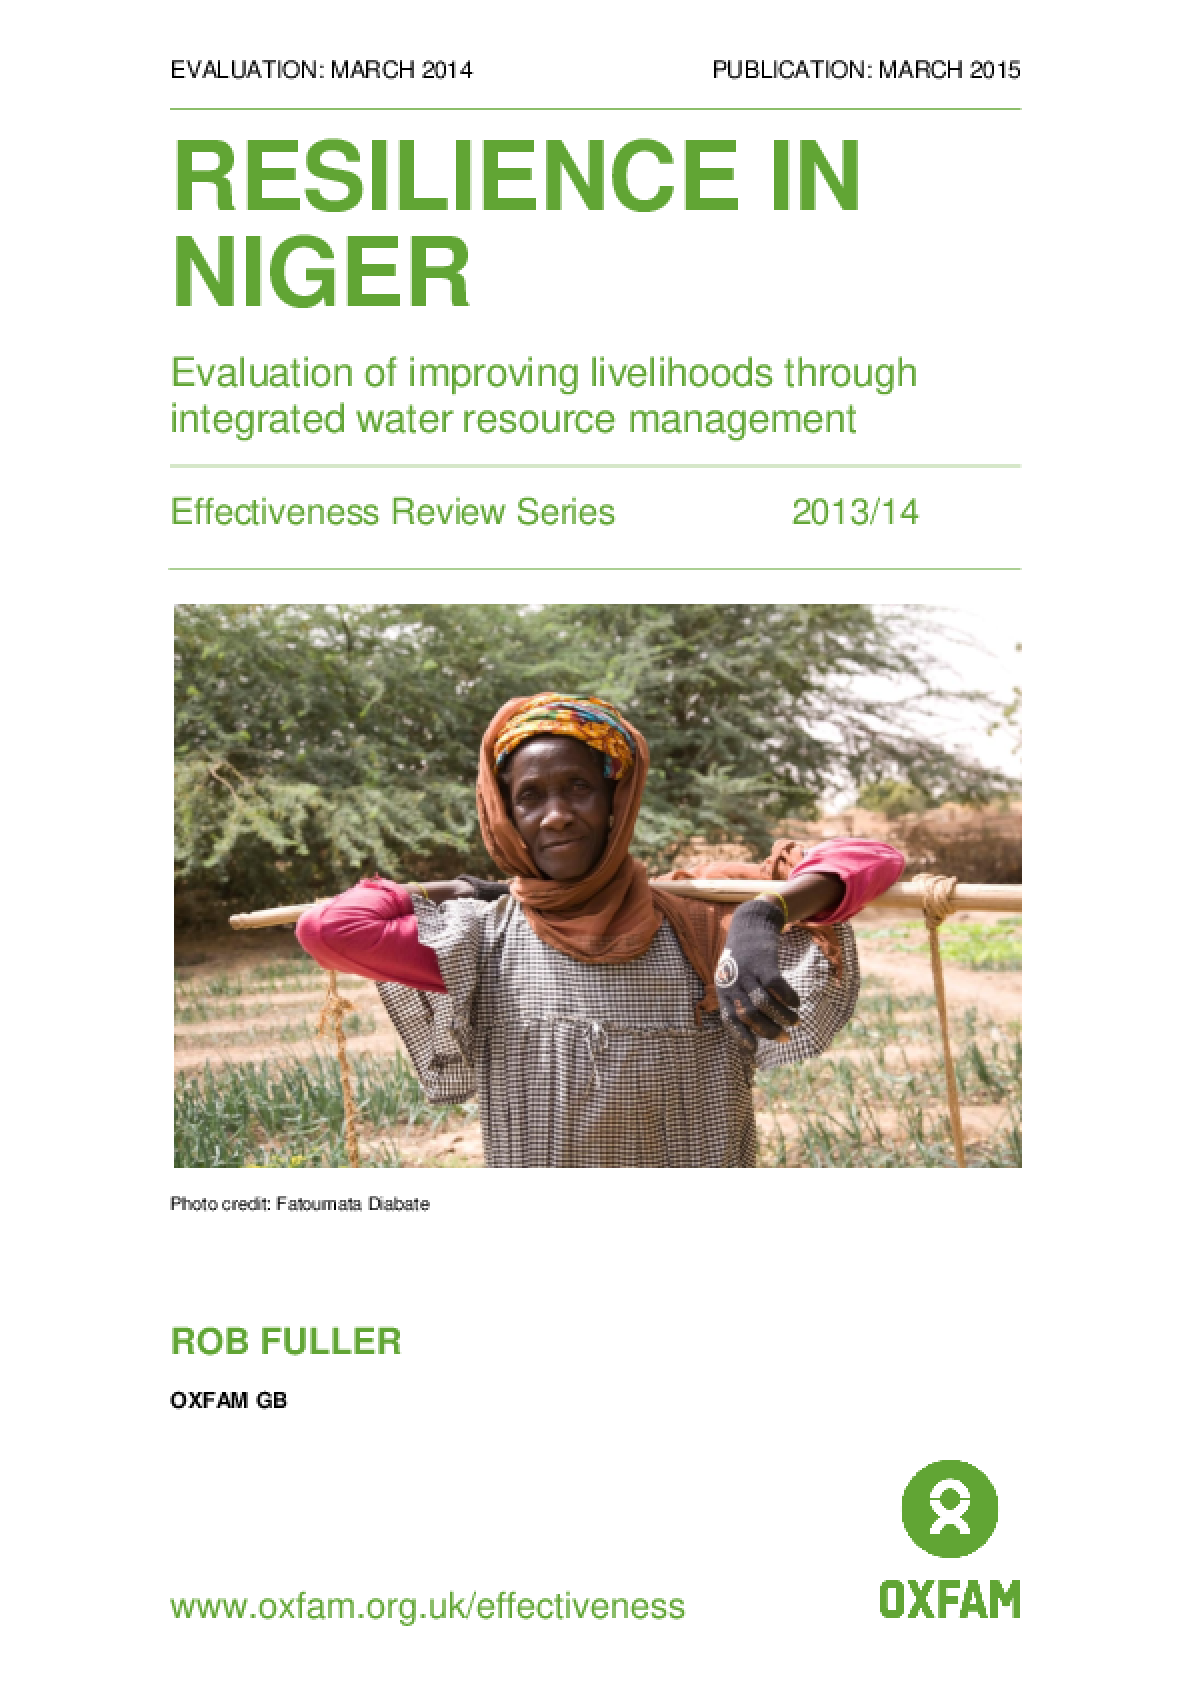 Resilience in Niger: Evaluation of improving livelihoods through integrated water resource management